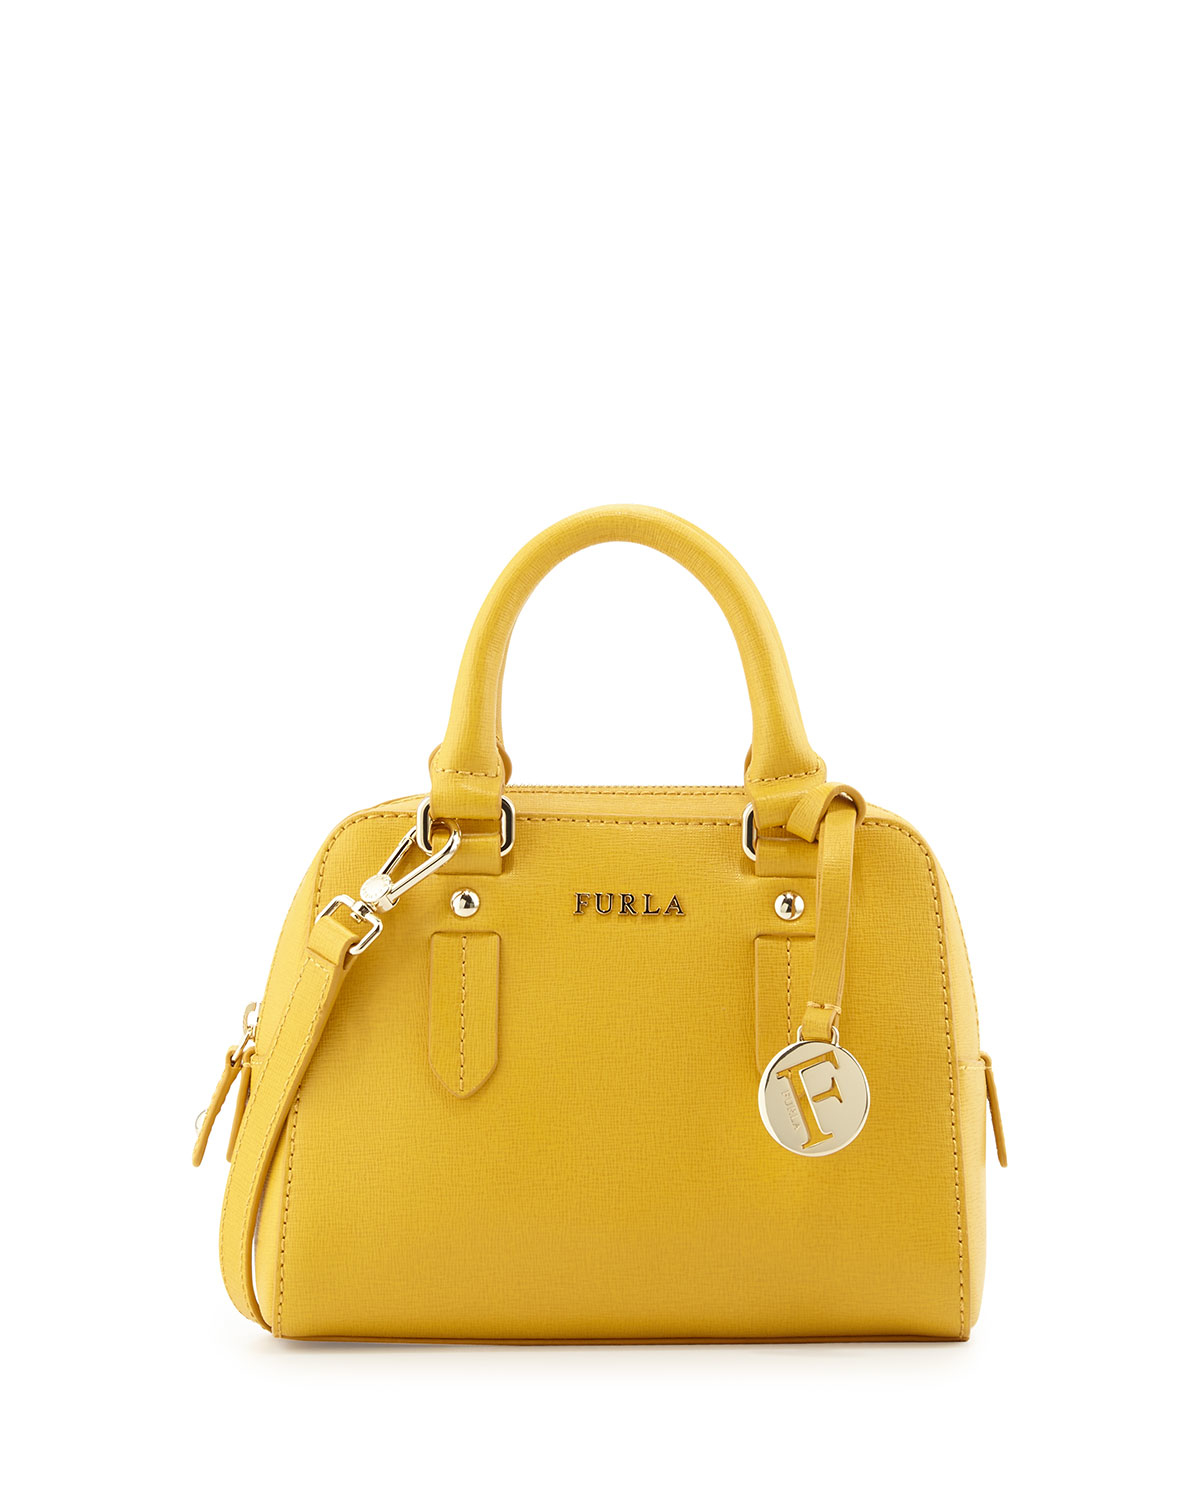 Furla Elena Mini Leather Satchel Bag in Yellow | Lyst